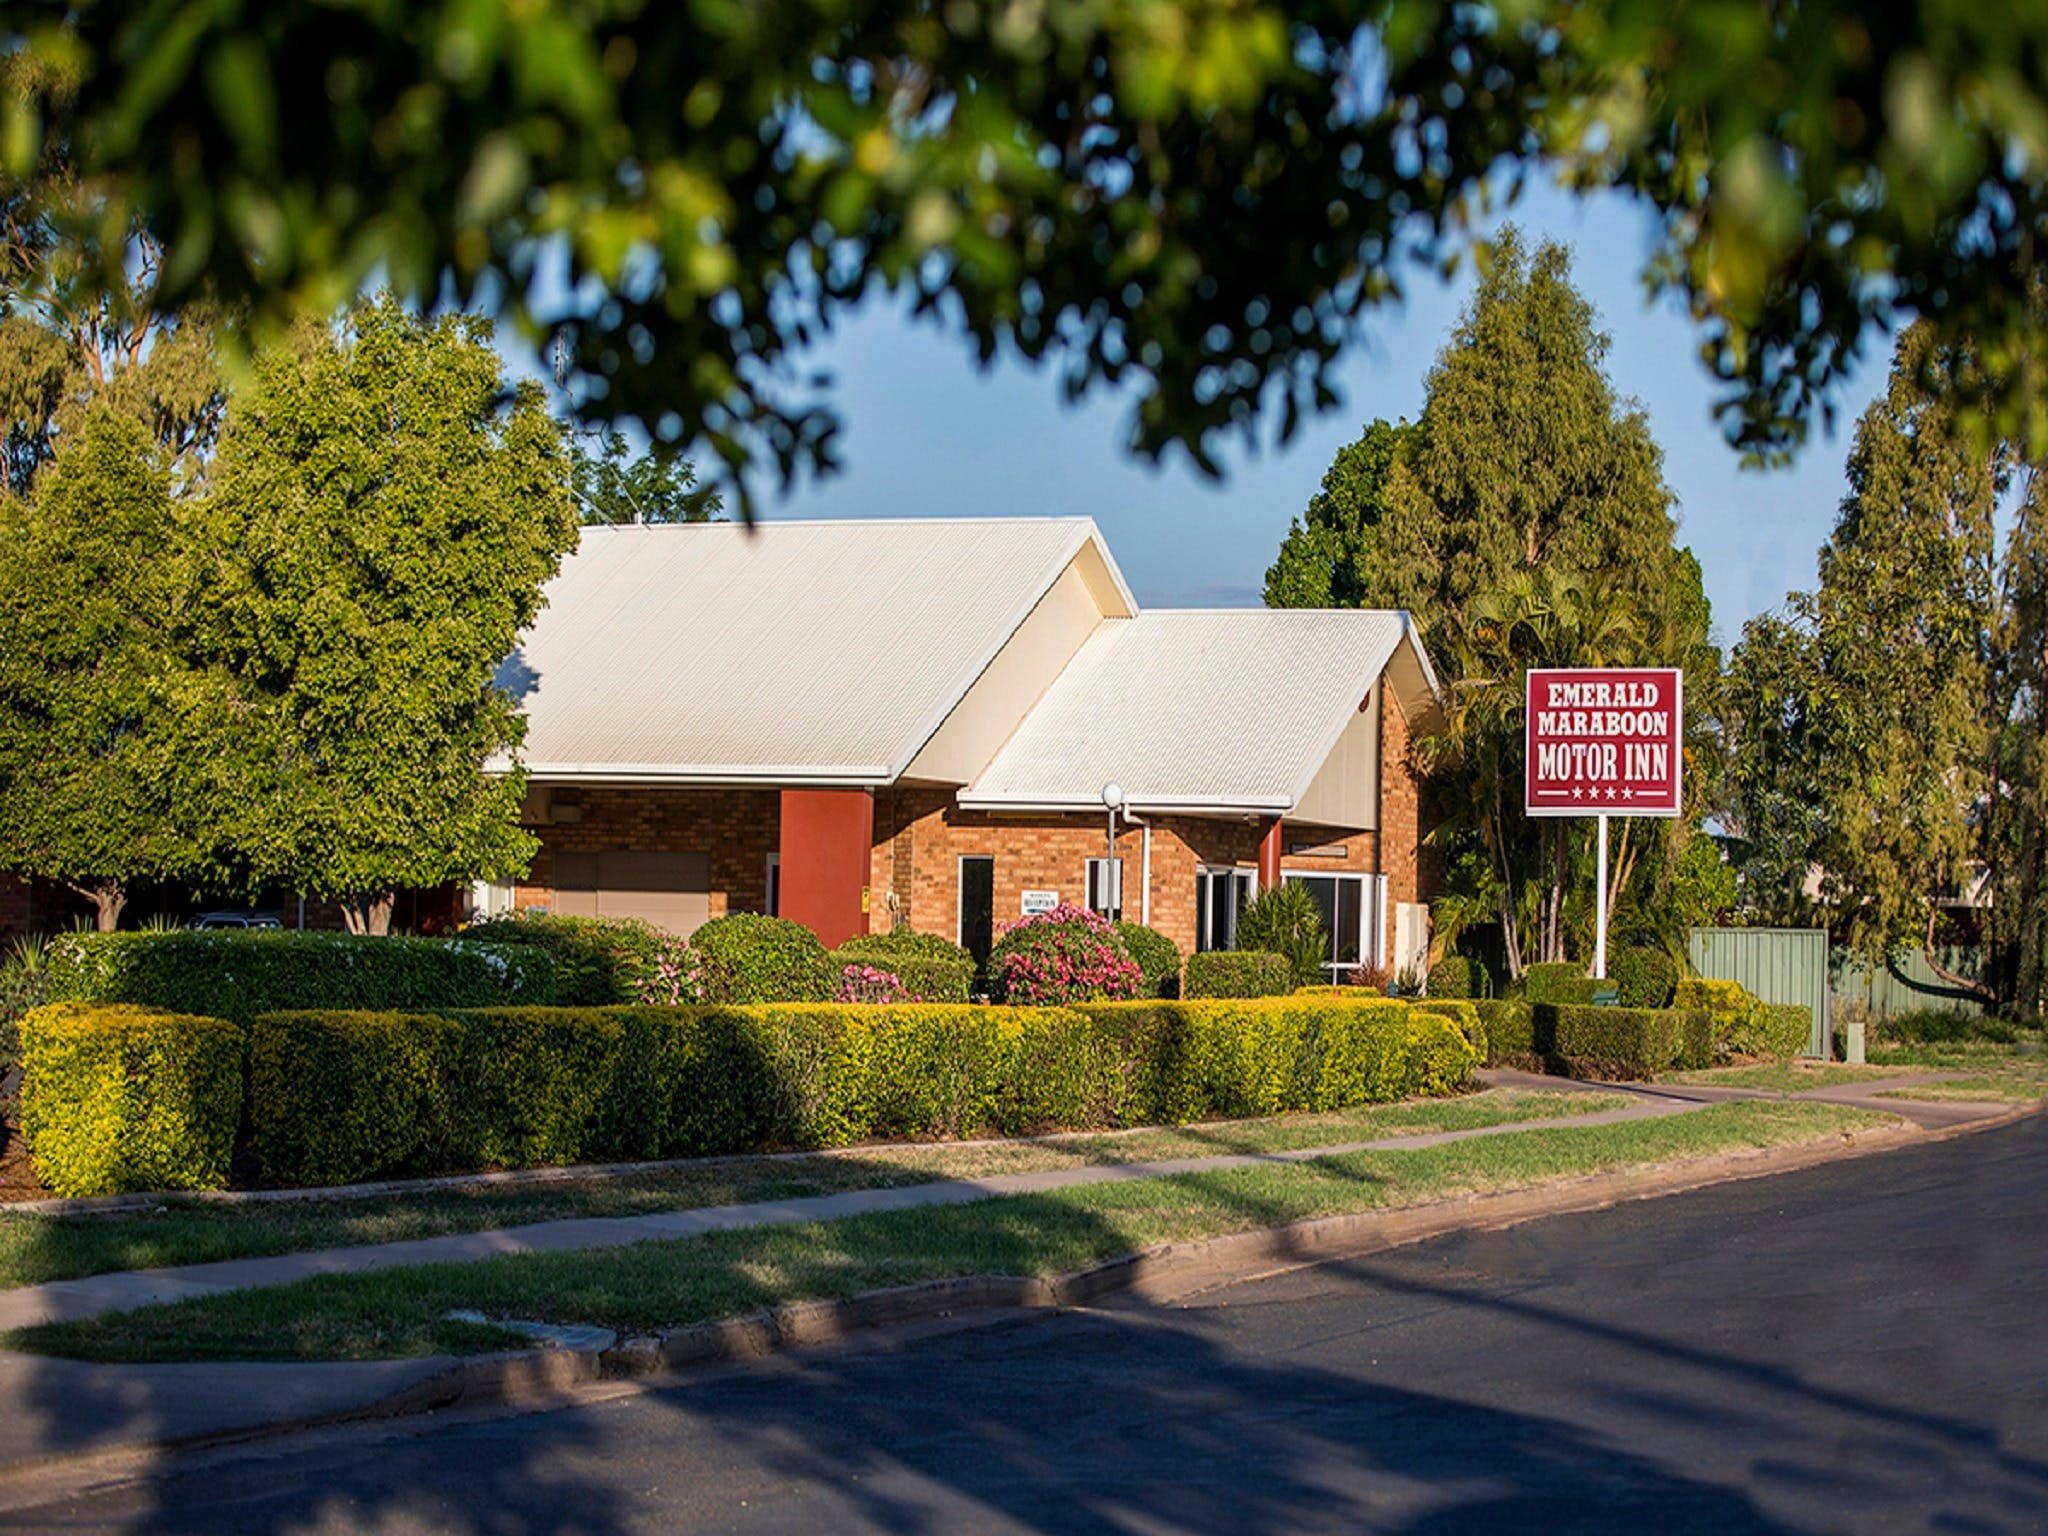 Emerald Maraboon Motor Inn - Accommodation Georgetown